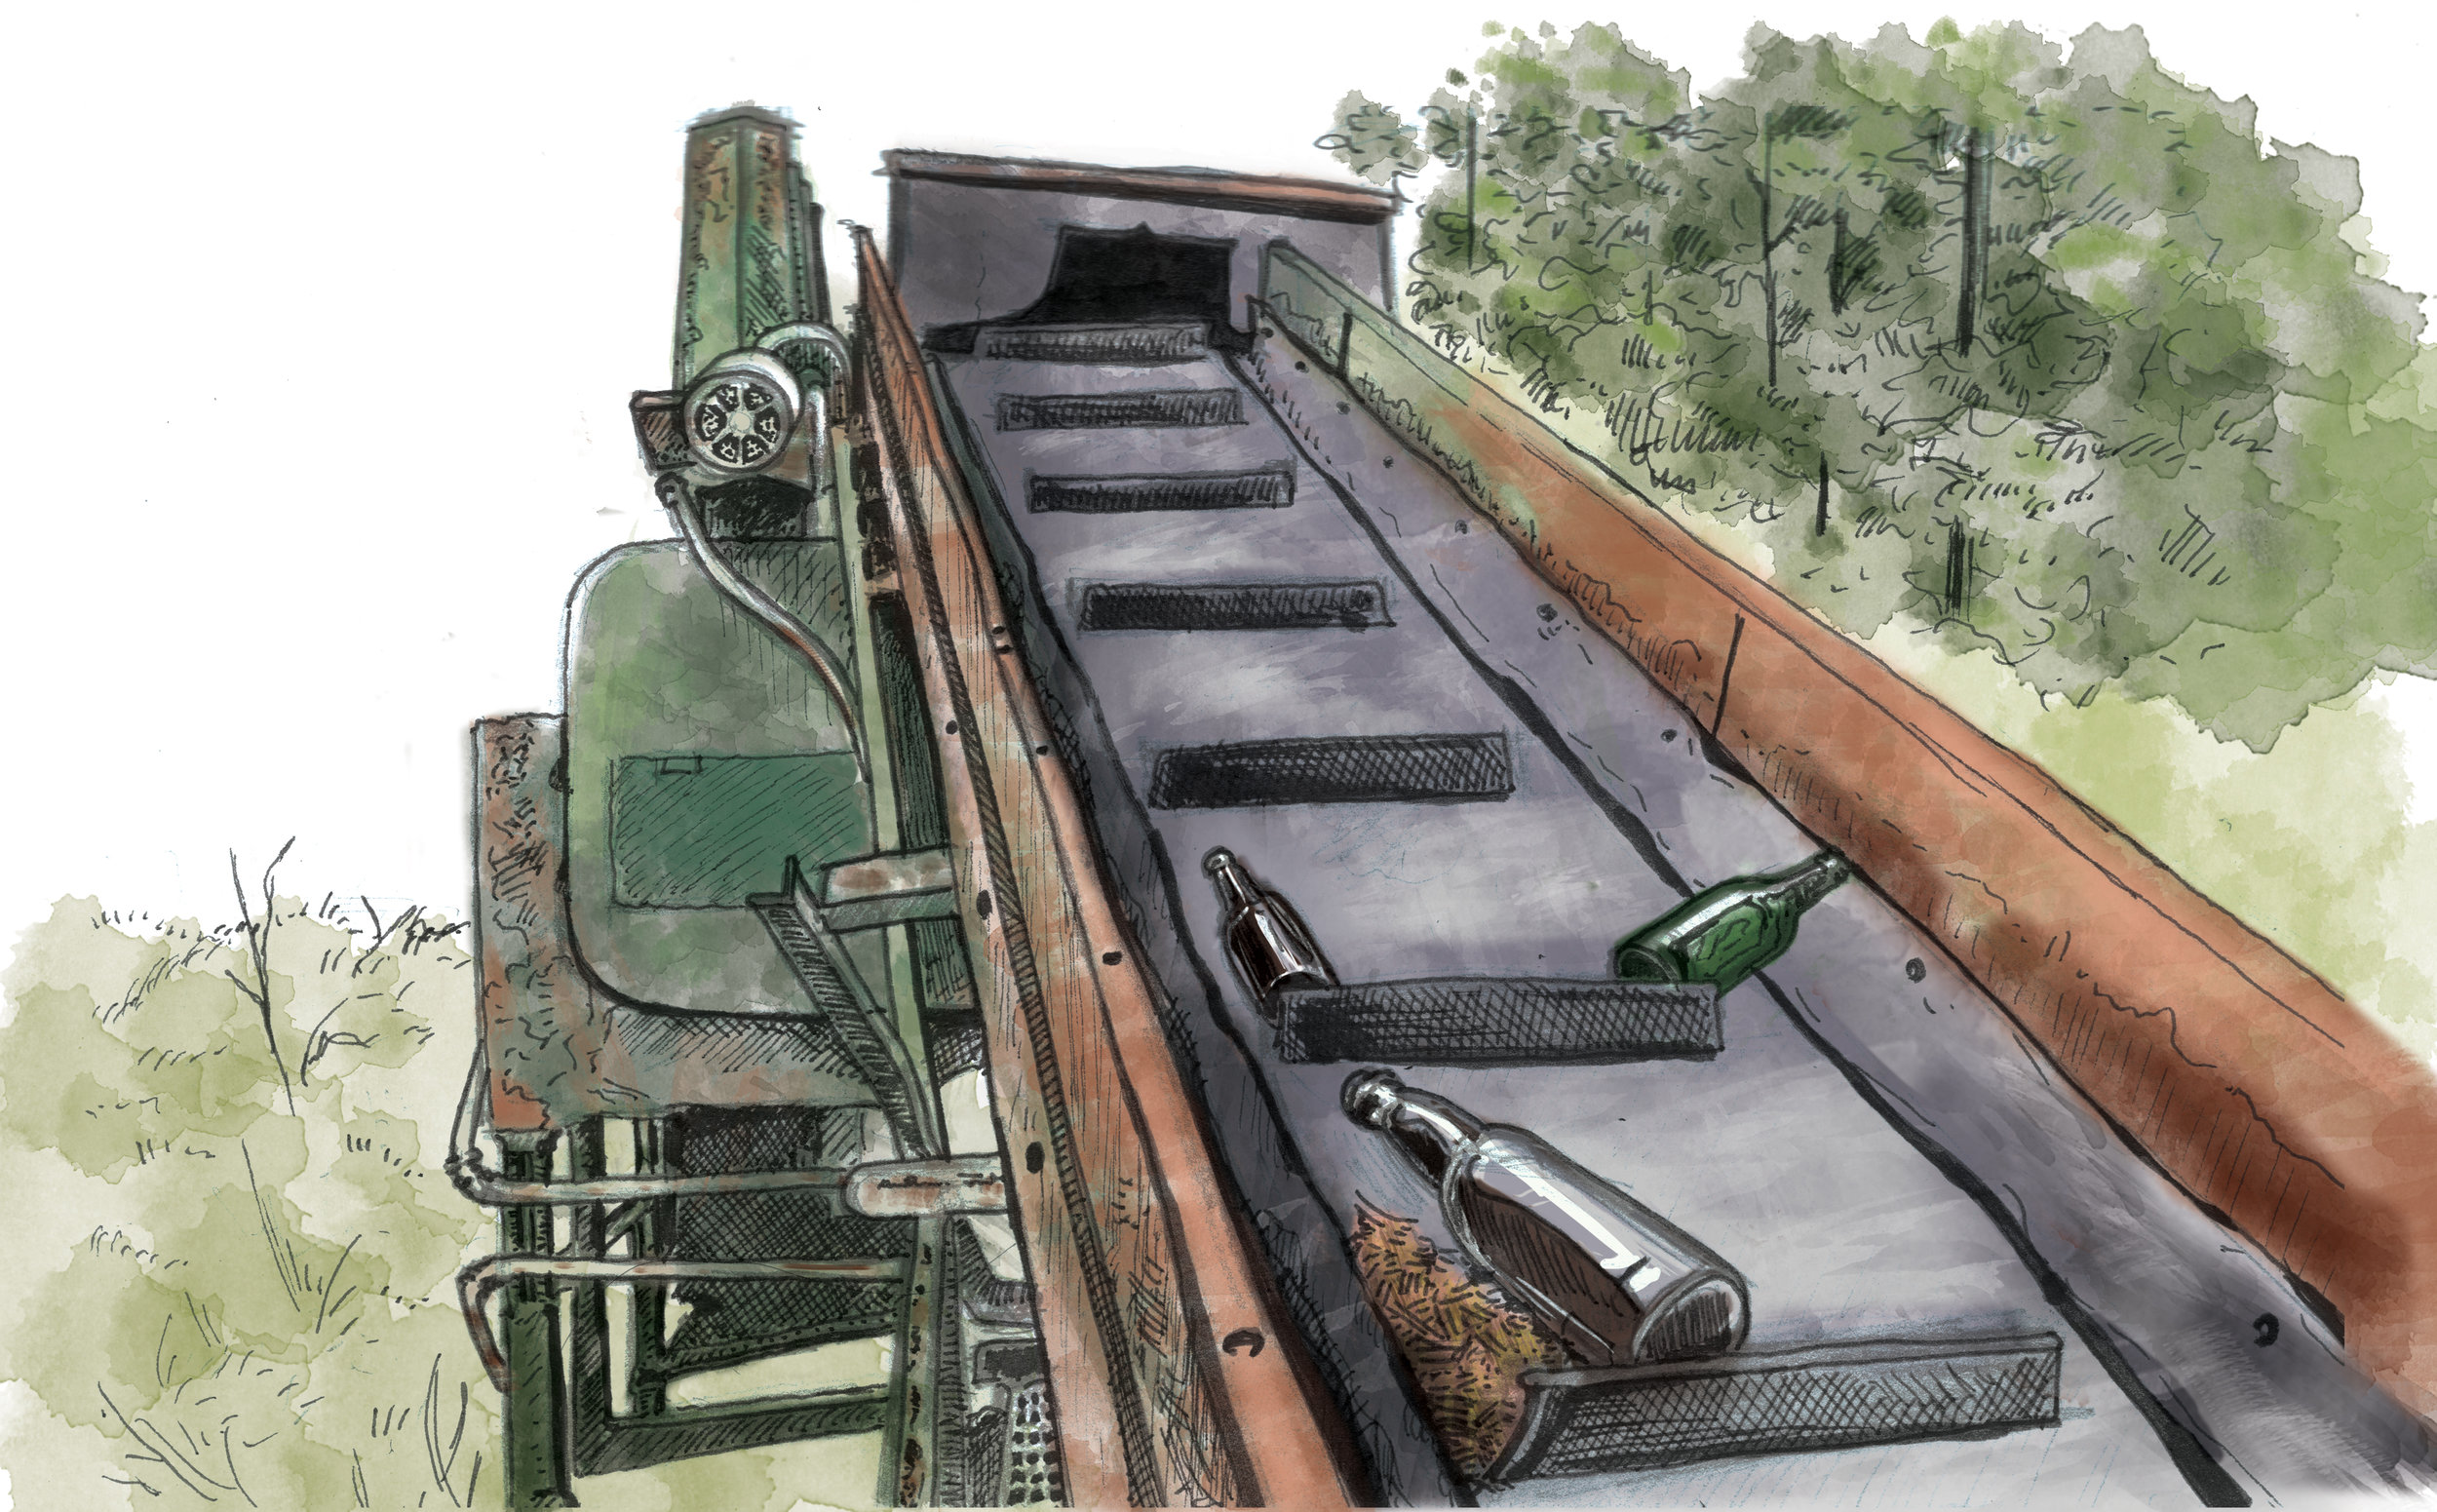 glass crusher-colored-large.jpg